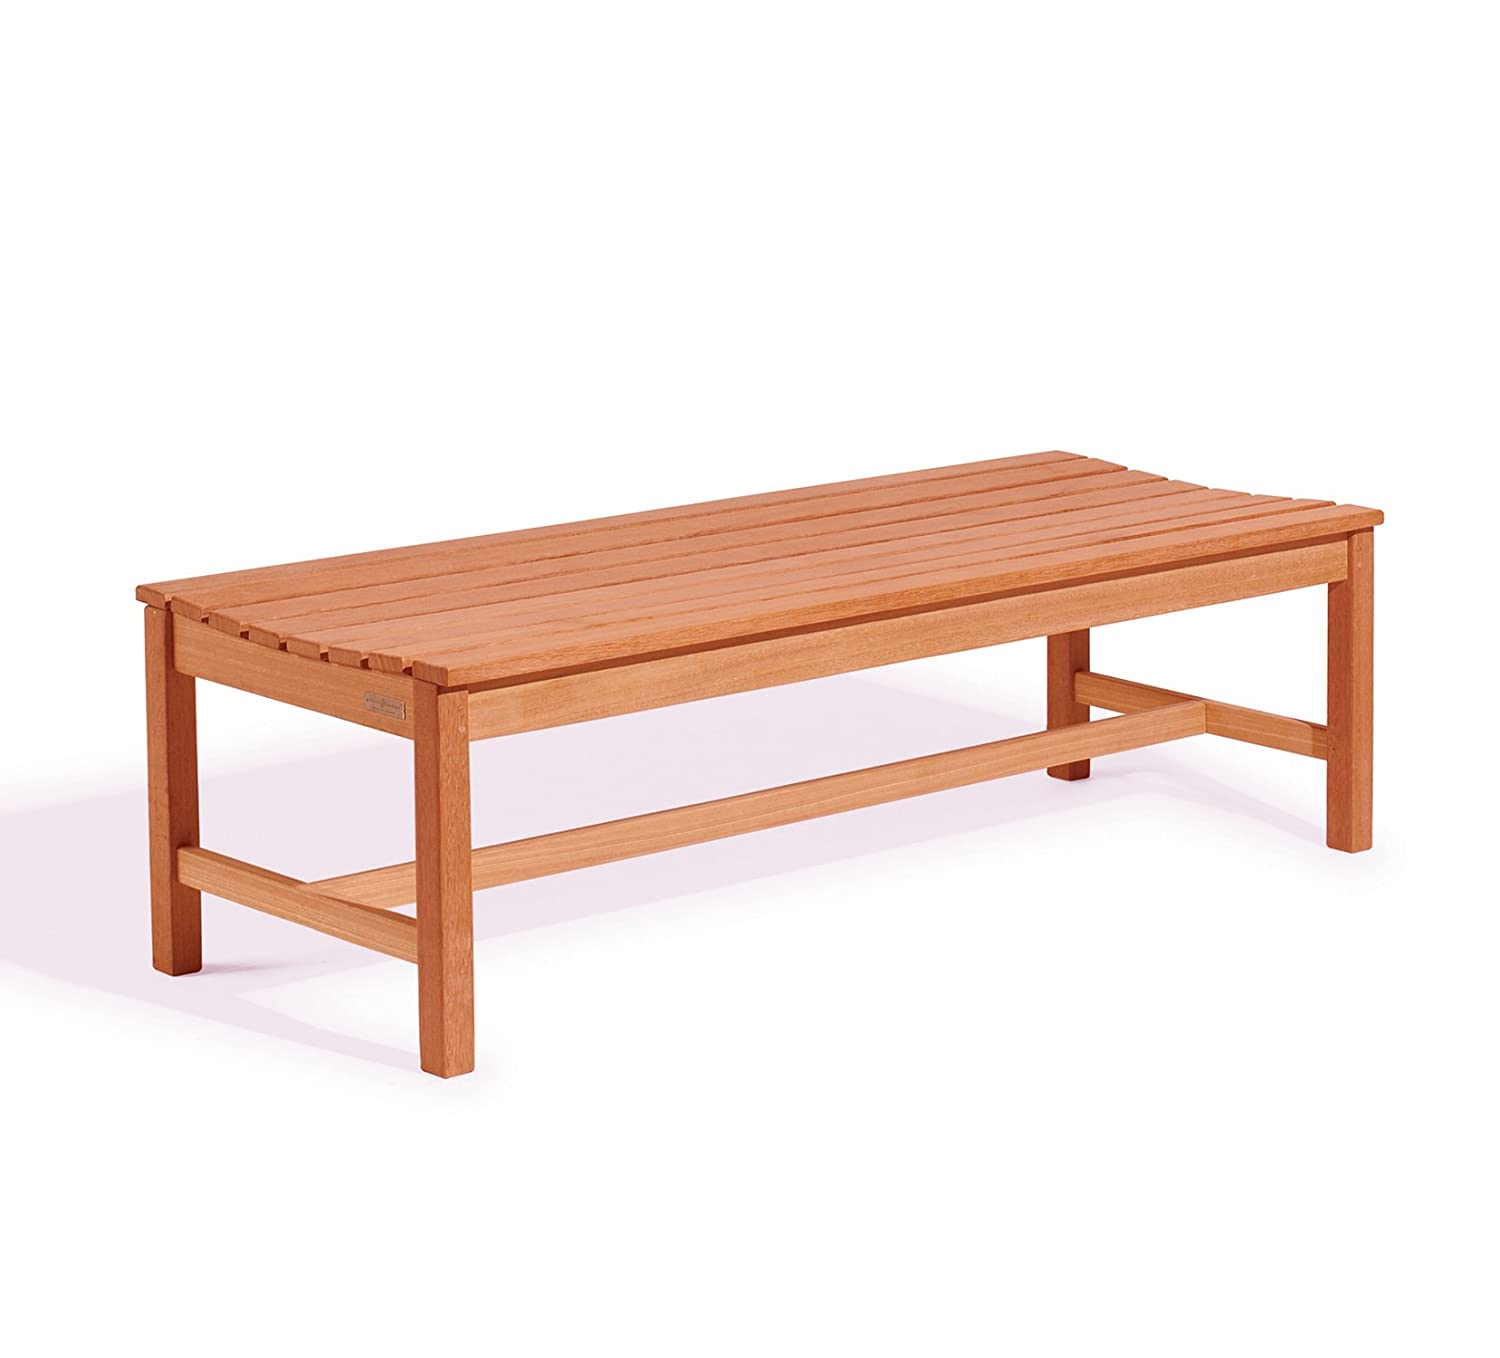 Vifah V025-1 Outdoor Baltic Wood Garden Backless Slatted Seat Bench, 5-Feet